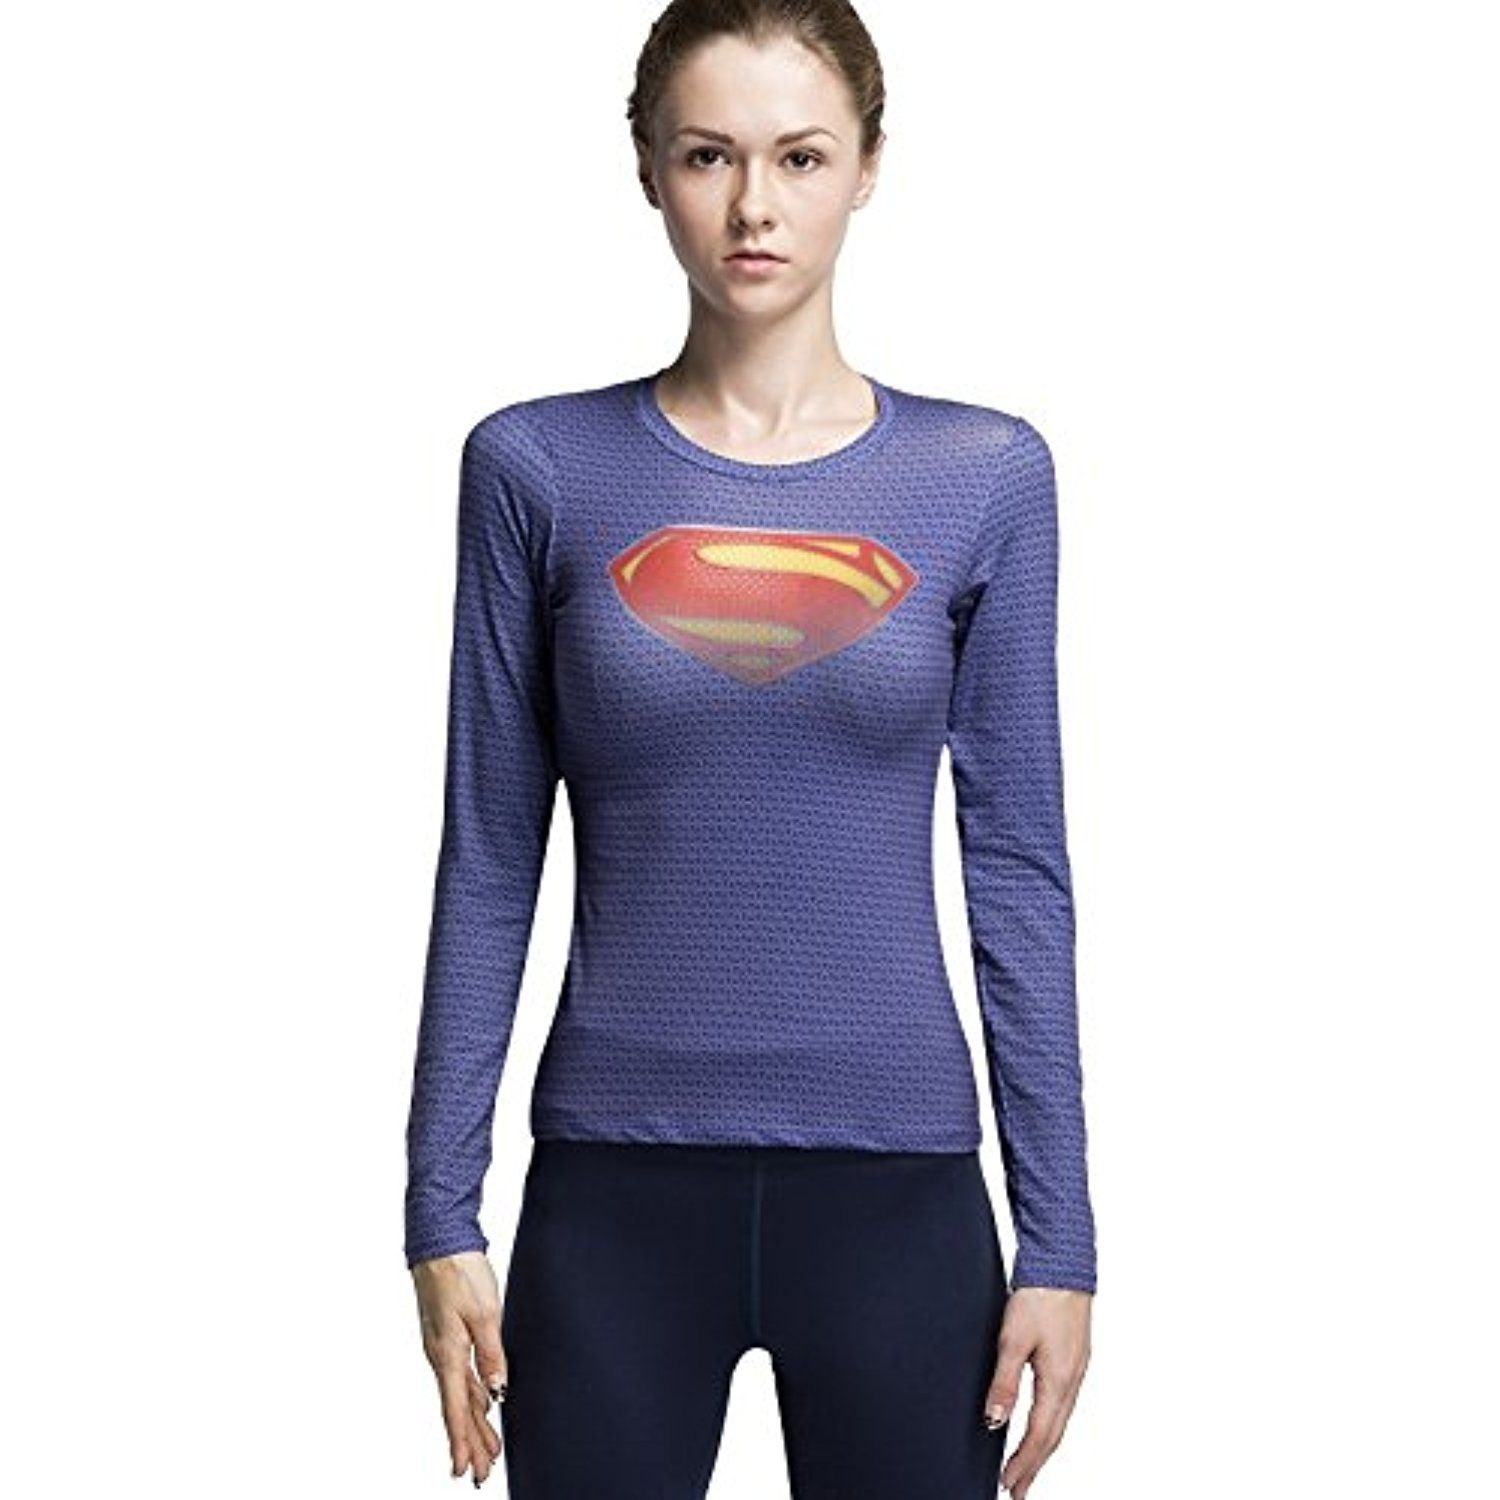 b81144c5e83 Red Plume Women s Compression Tights Tee